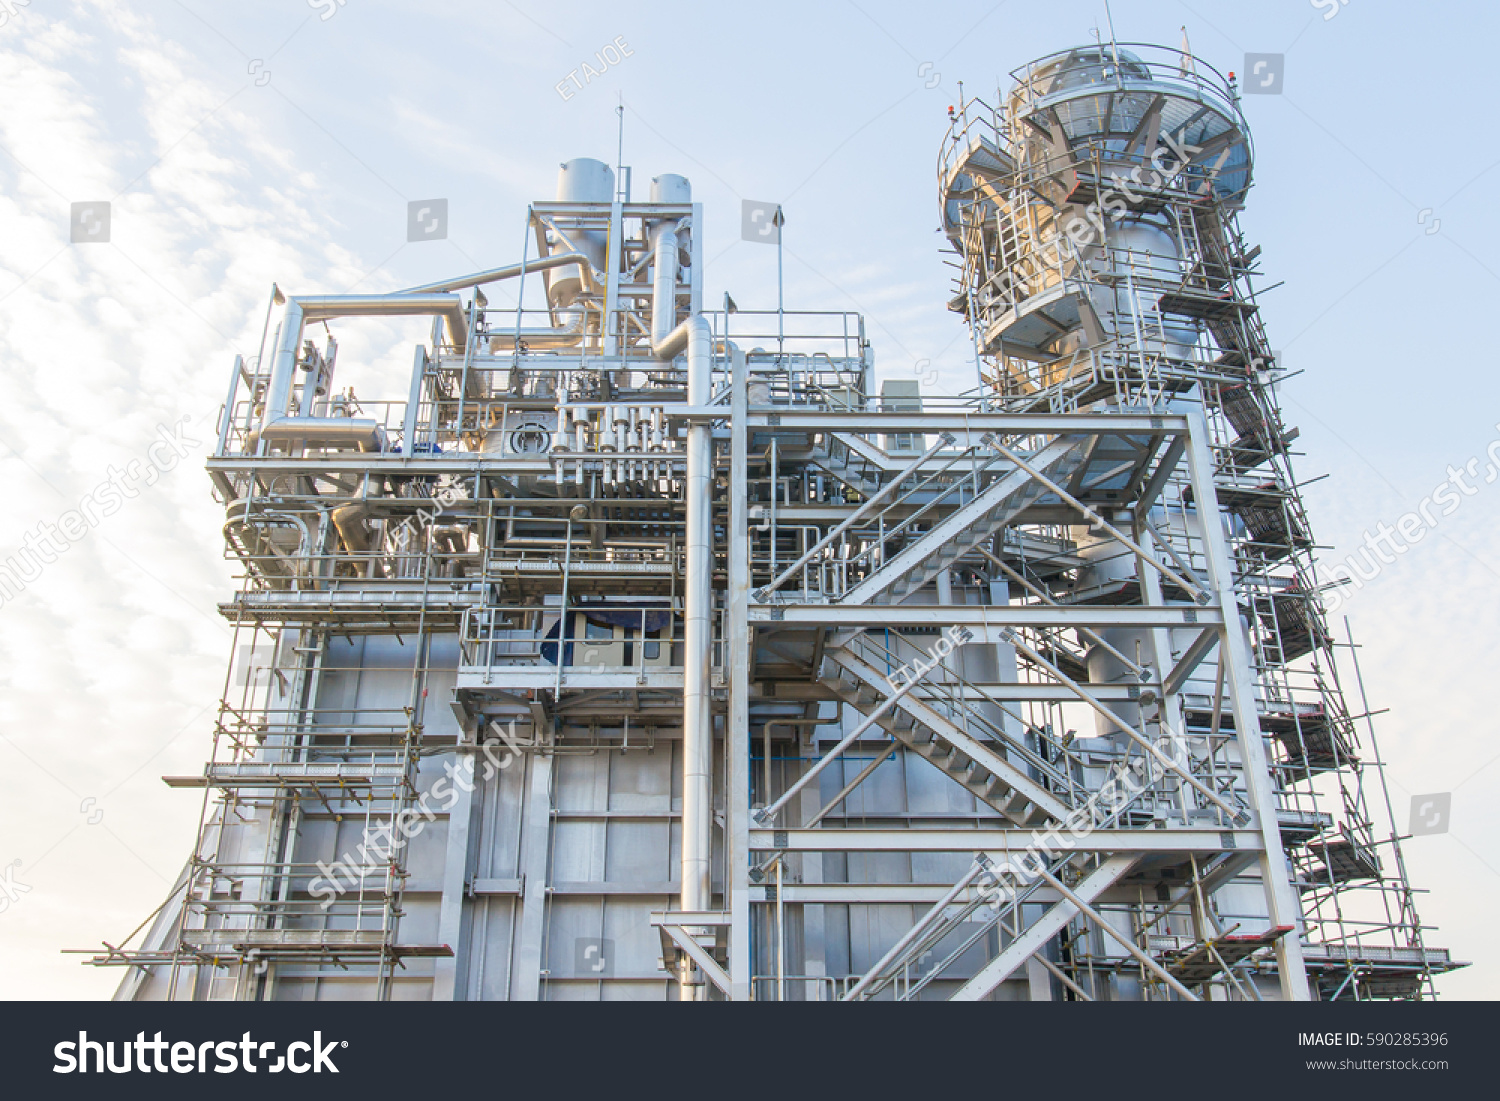 Natural Gas Combined Cycle HRSG Boiler Stock Photo (Royalty Free ...